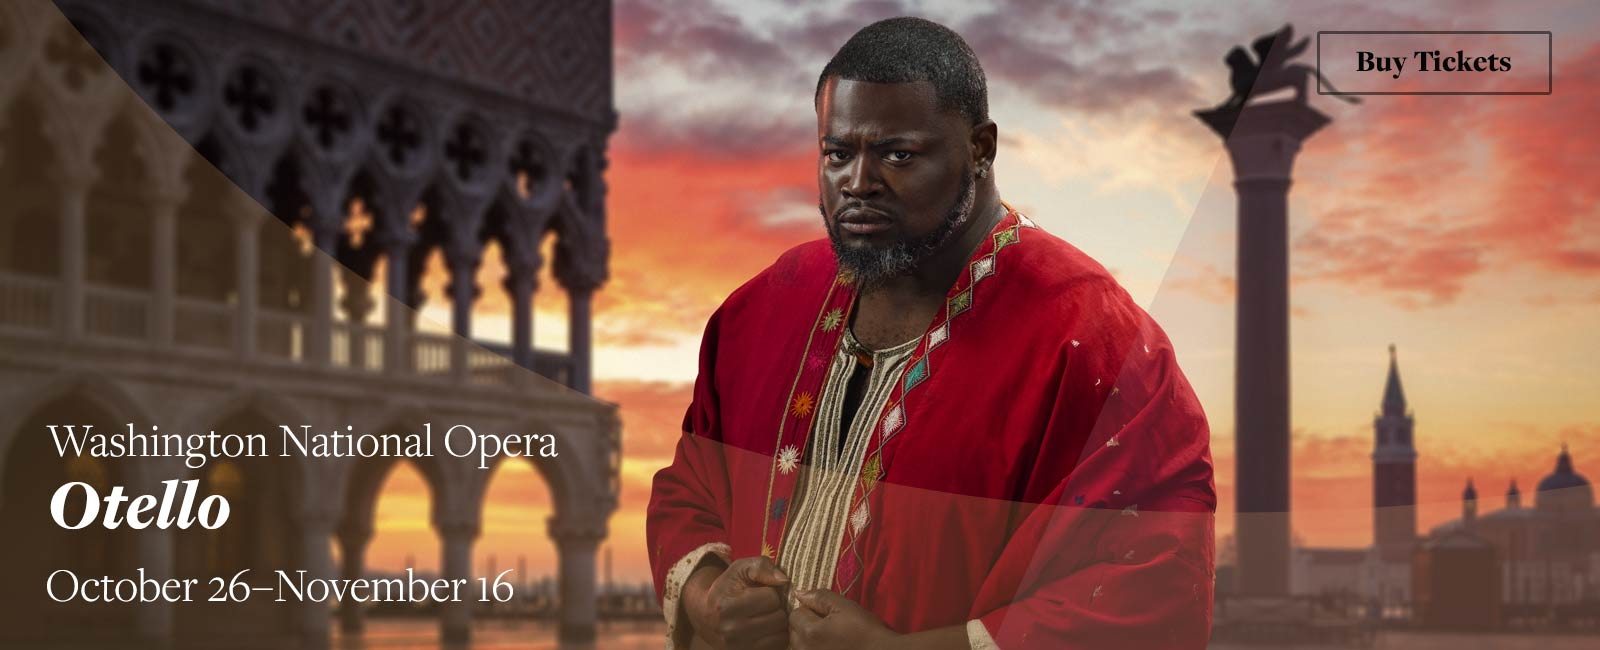 Washington National Opera: Otello